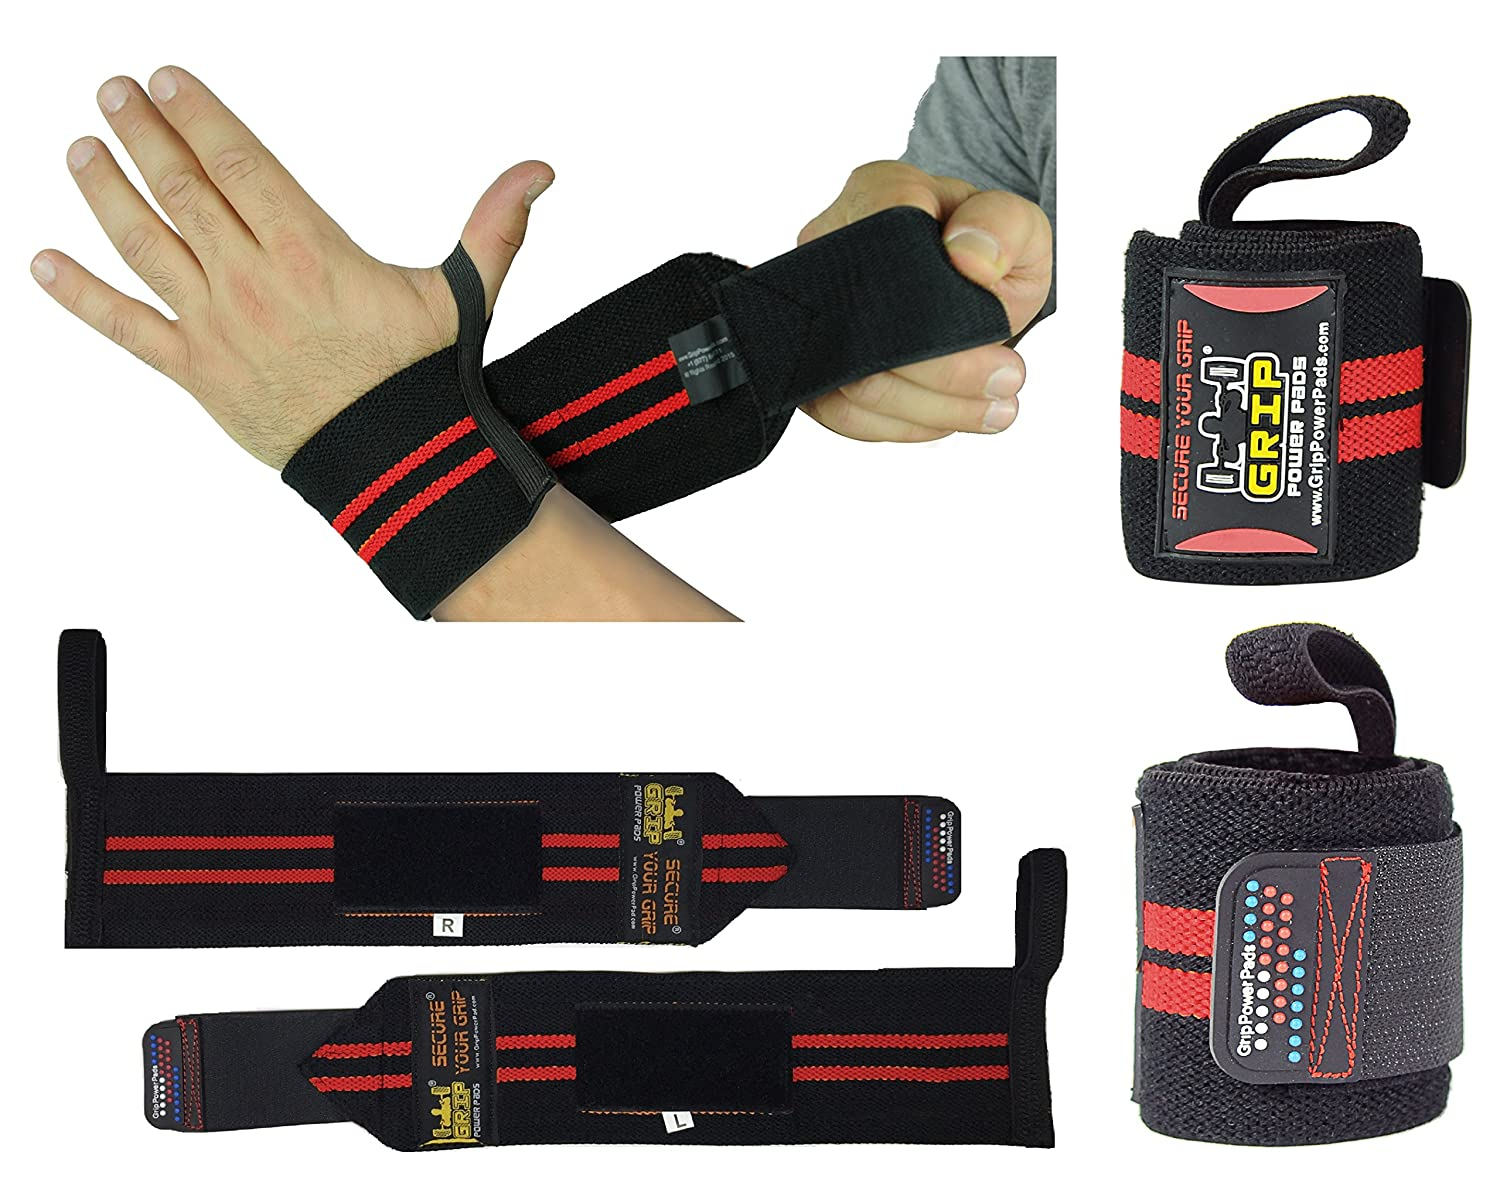 Top 5 Best Wrist Wraps Reviews in 2020 2